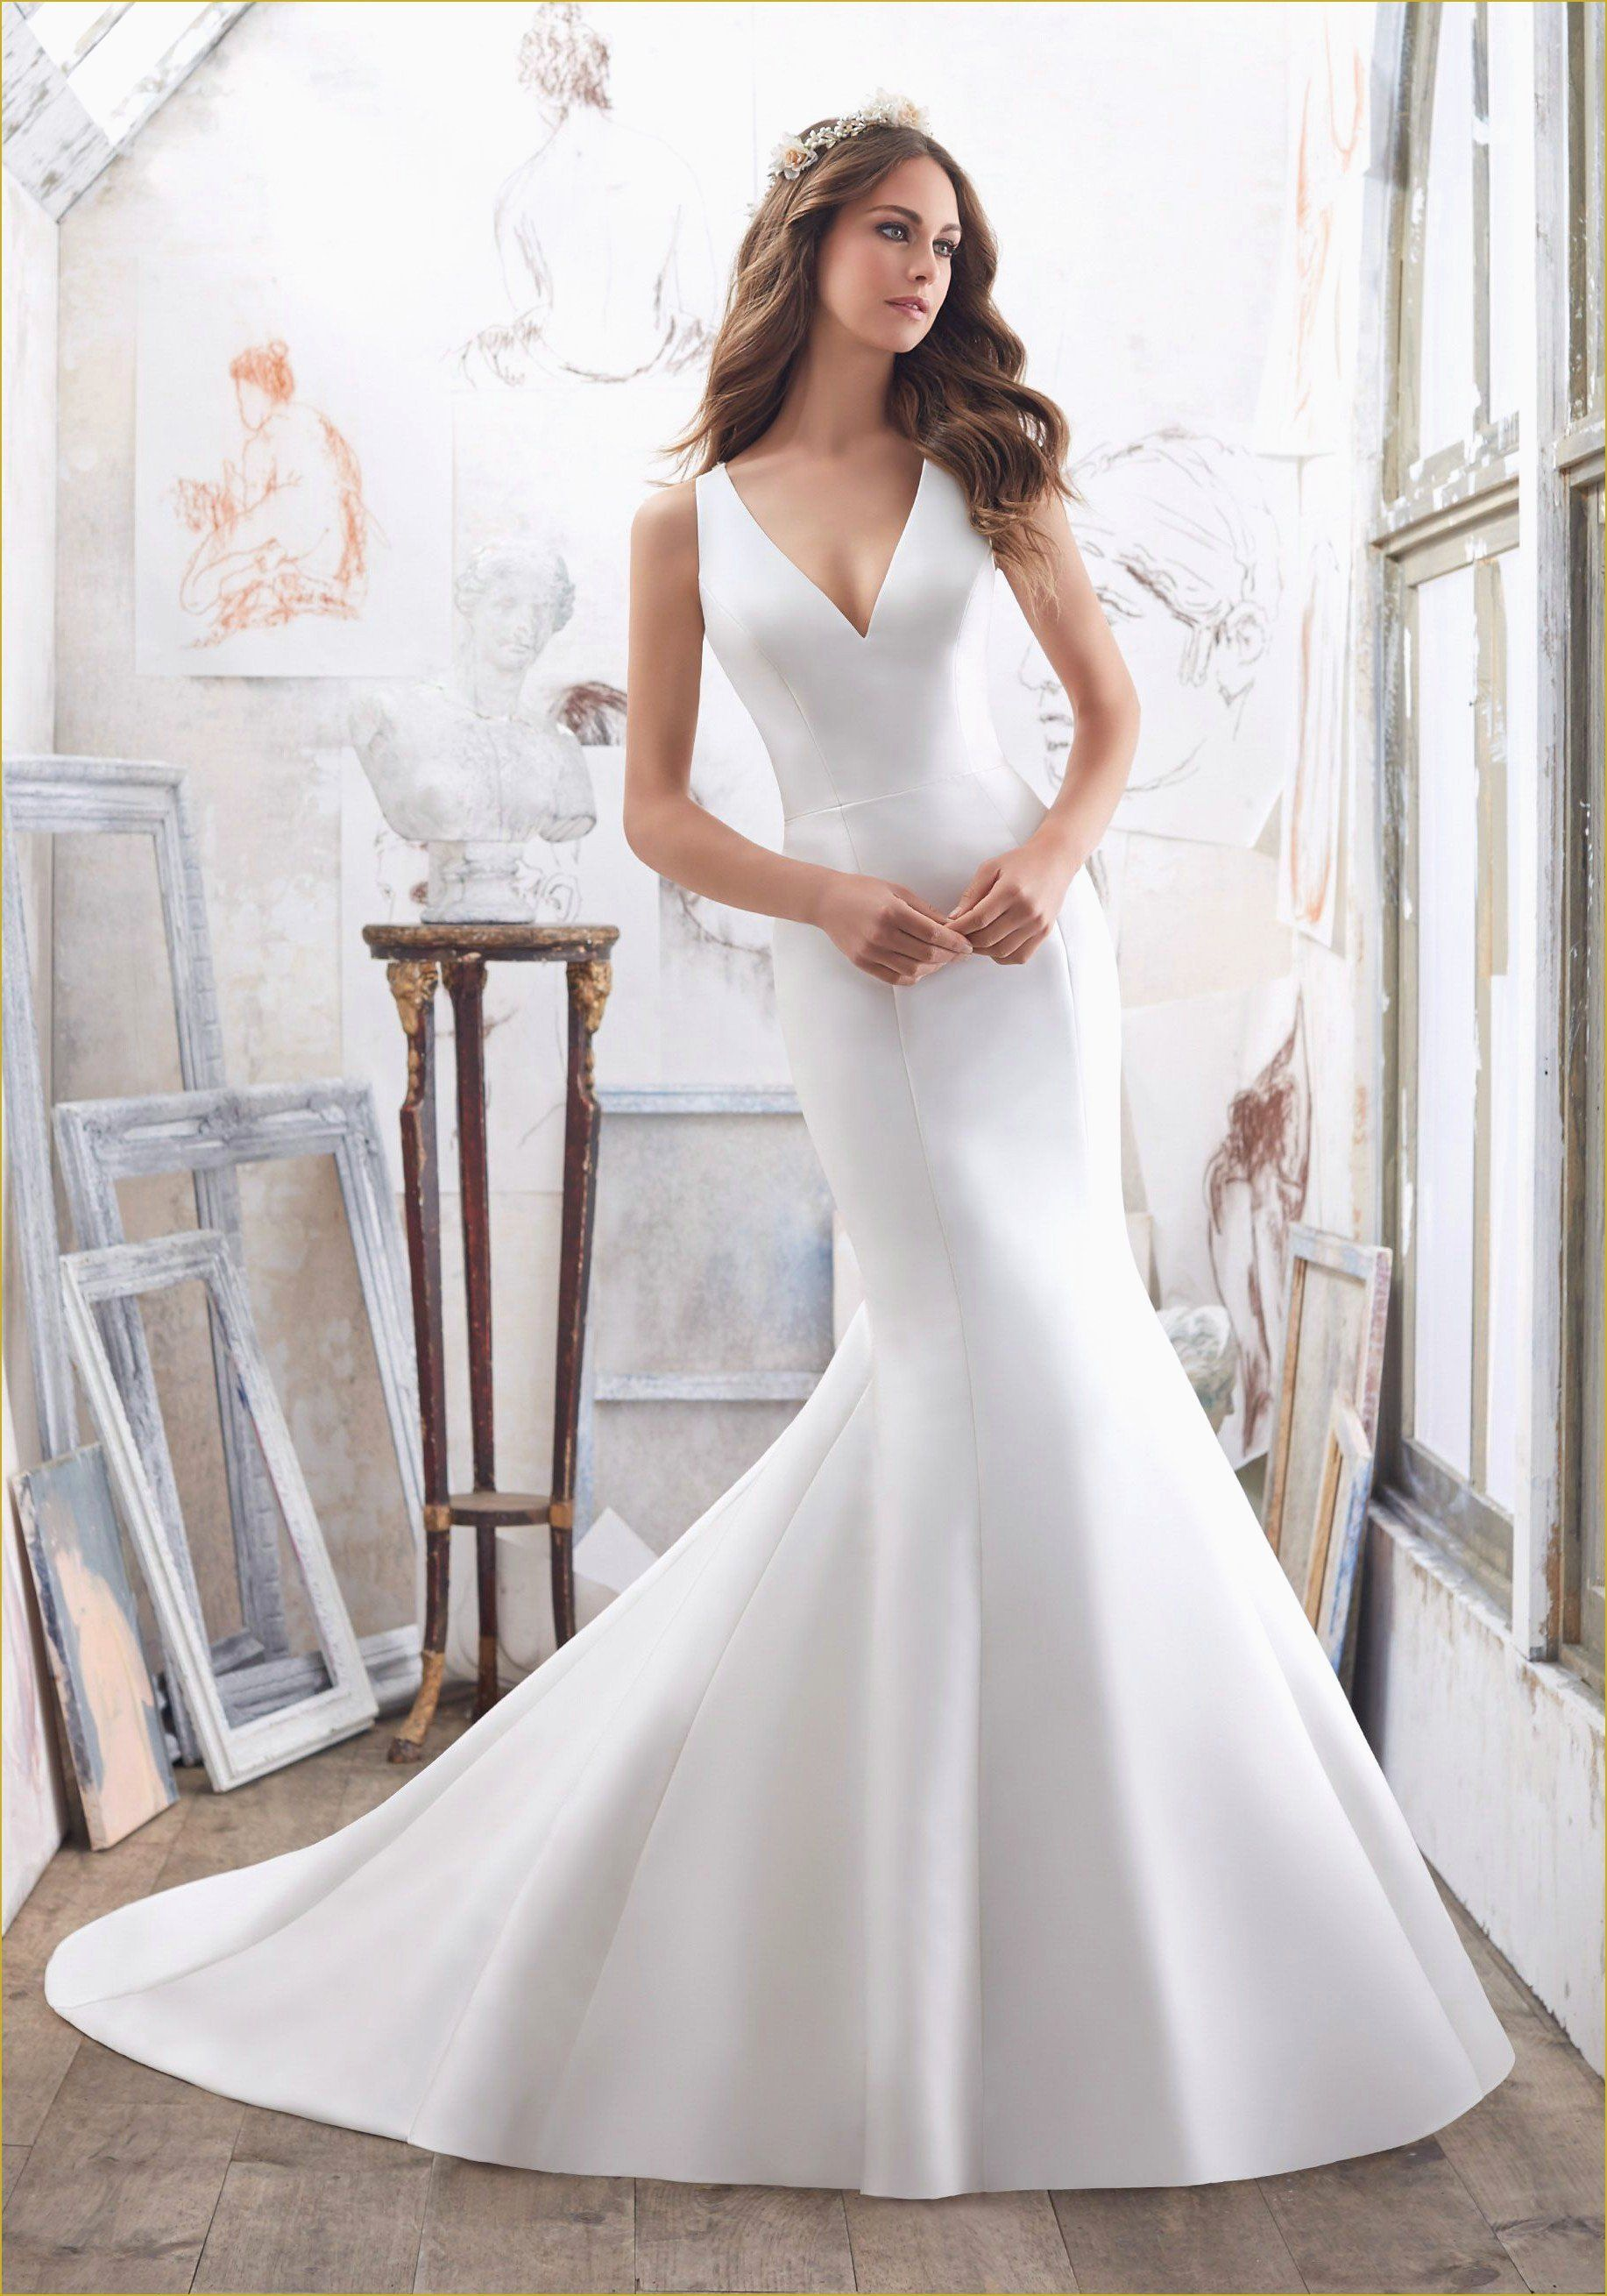 Lace Simple Wedding Dress Lovely Simple Wedding Dresses Not White In 2020 Fit And Flare Wedding Dress Wedding Dresses Satin Wedding Dresses